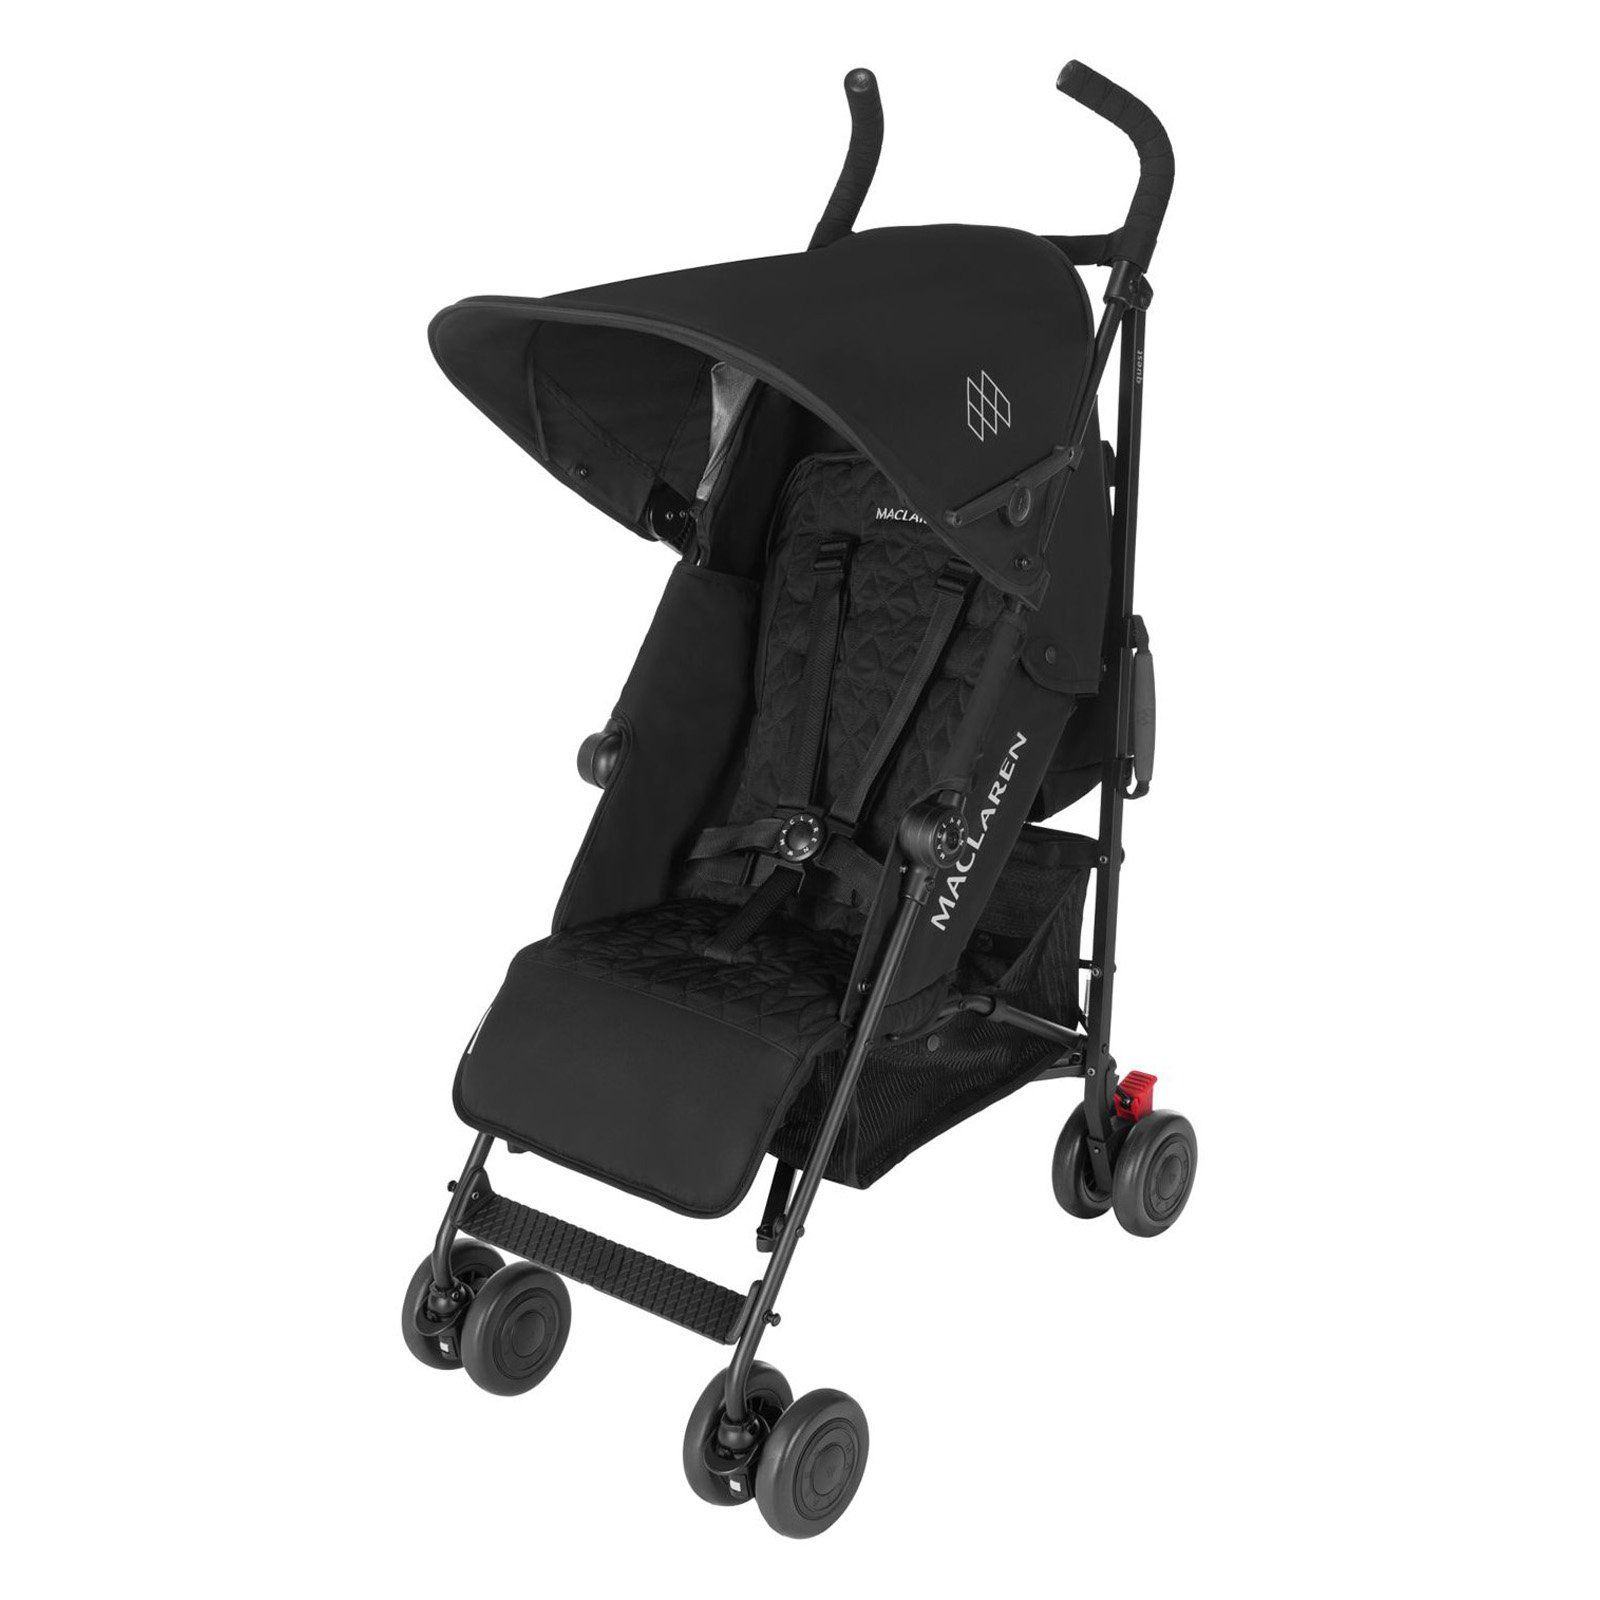 Maclaren Quest Lightweight Stroller Black Black Errands and day long adventures with baby are easier when you have the Maclaren Quest Black Black